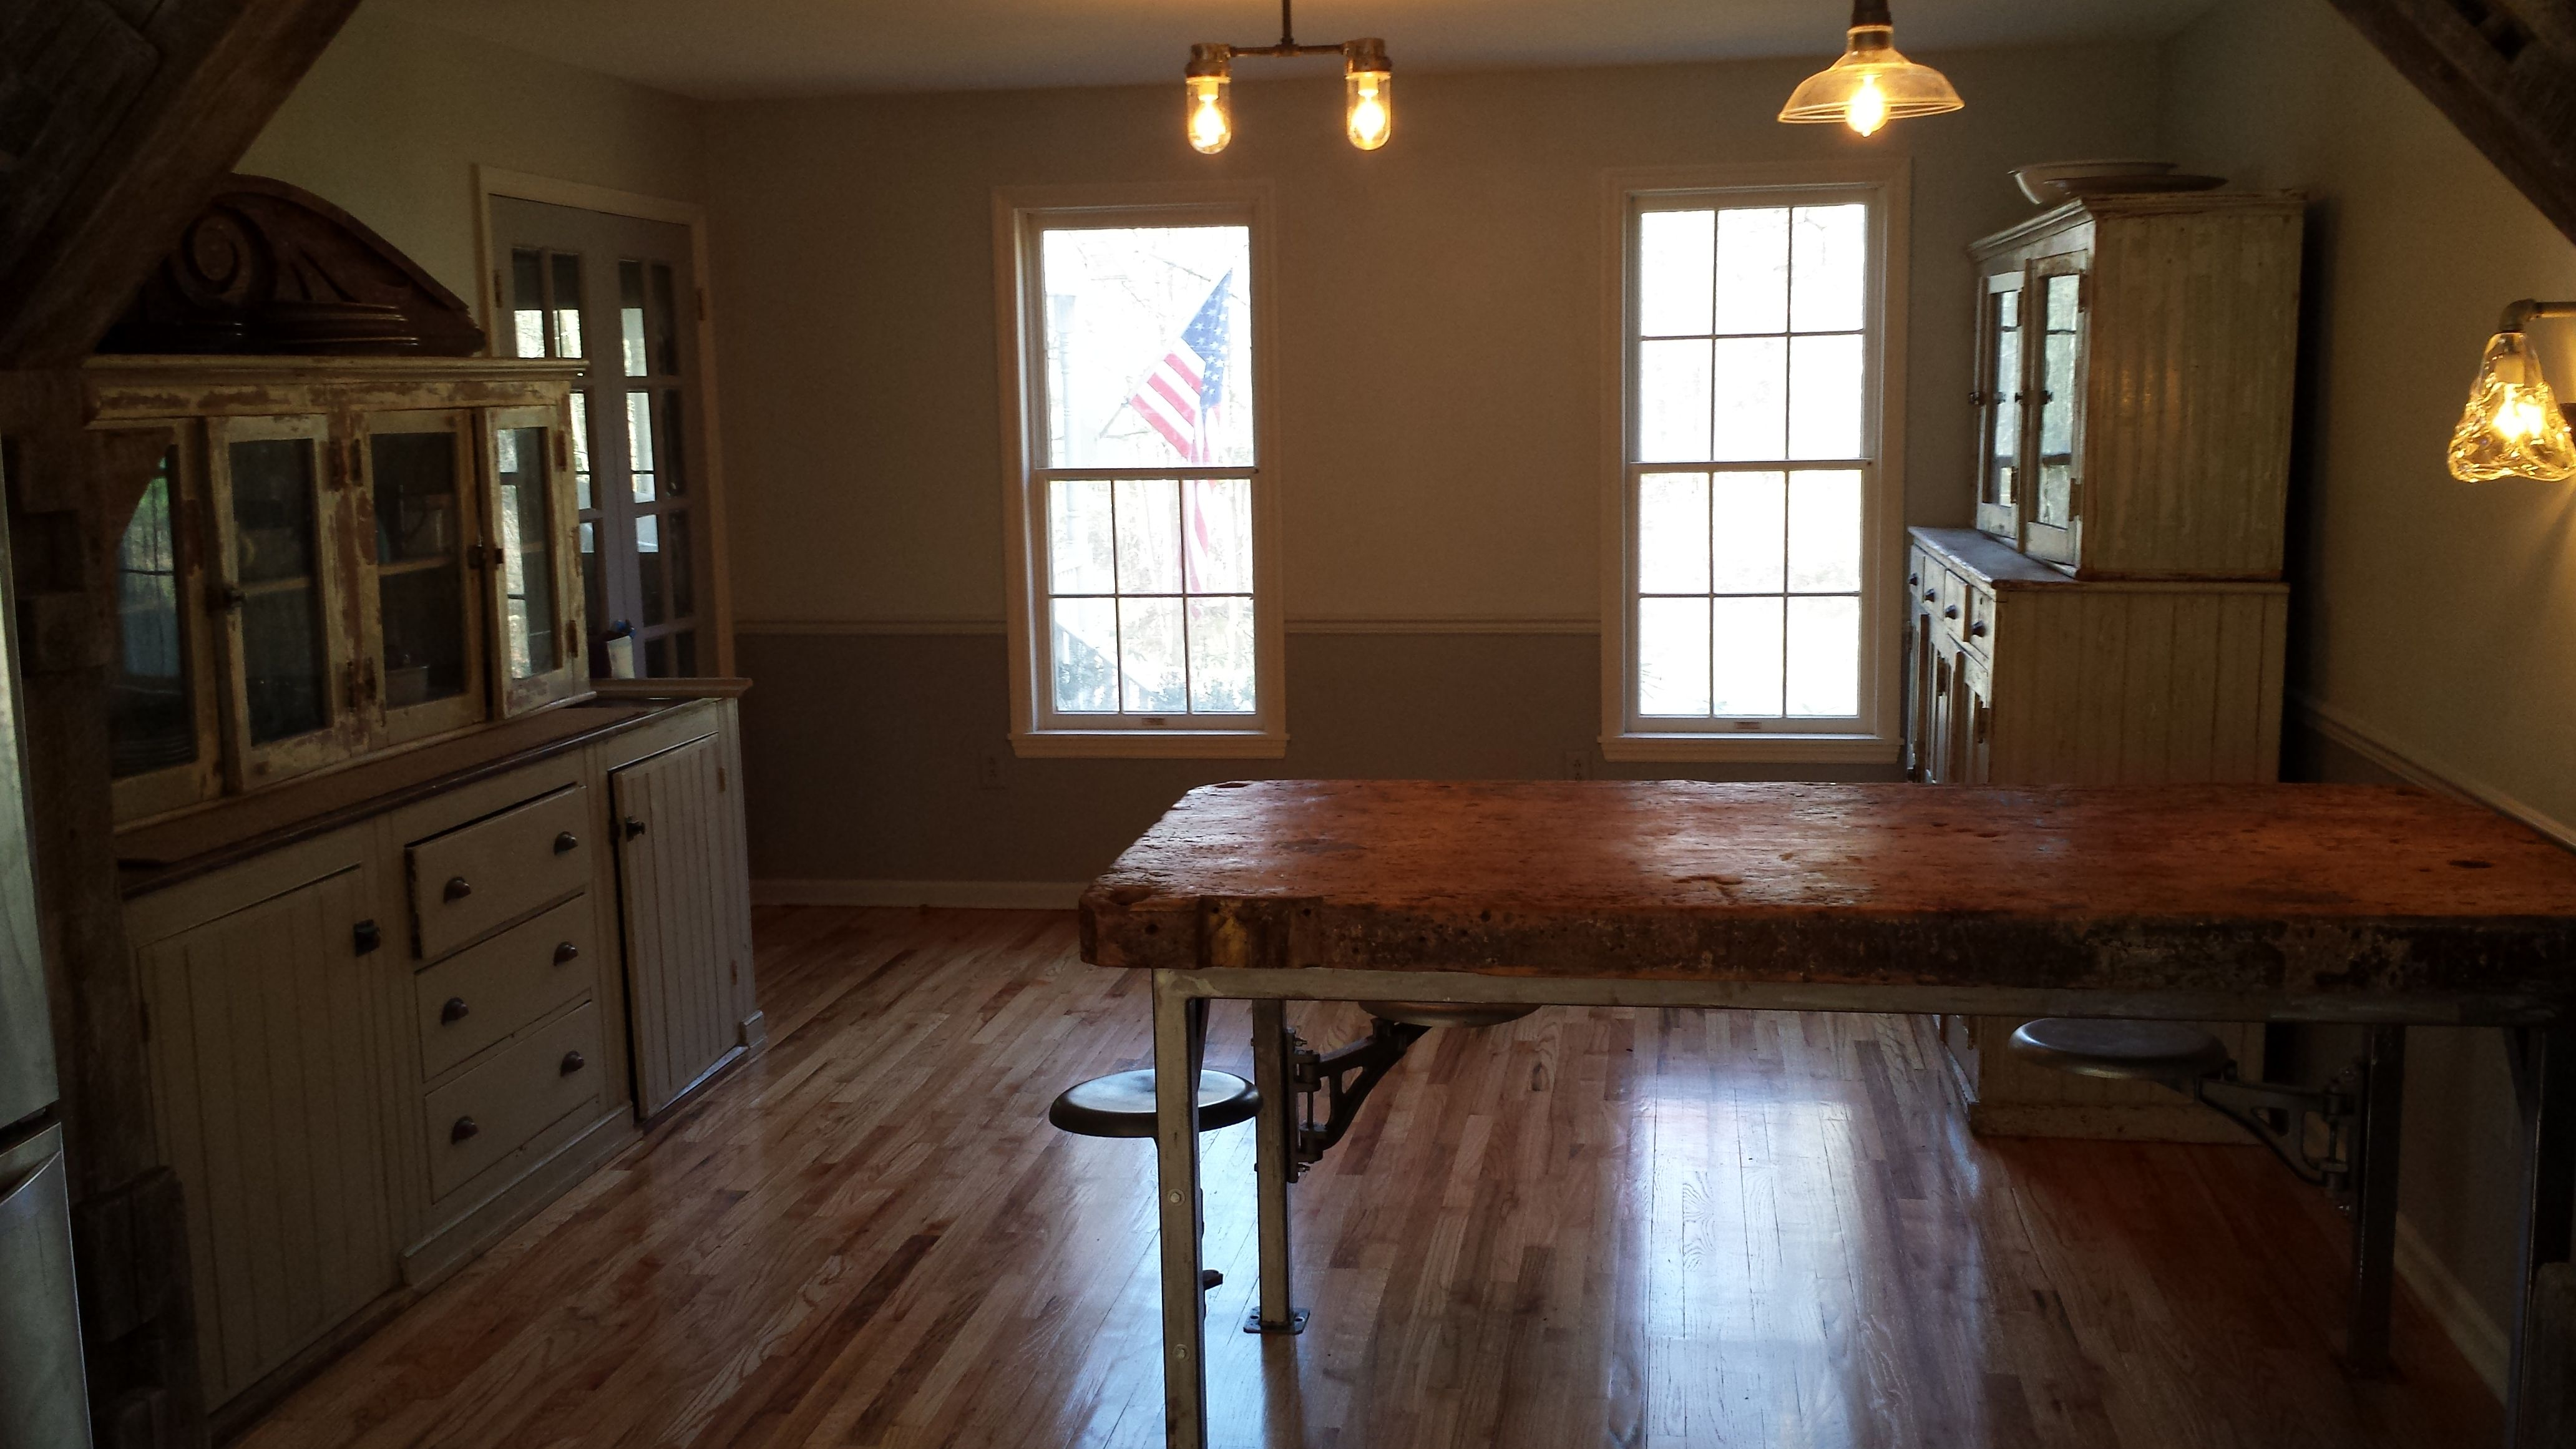 Kitchen Dining Bar Table With Attached Stool Seating